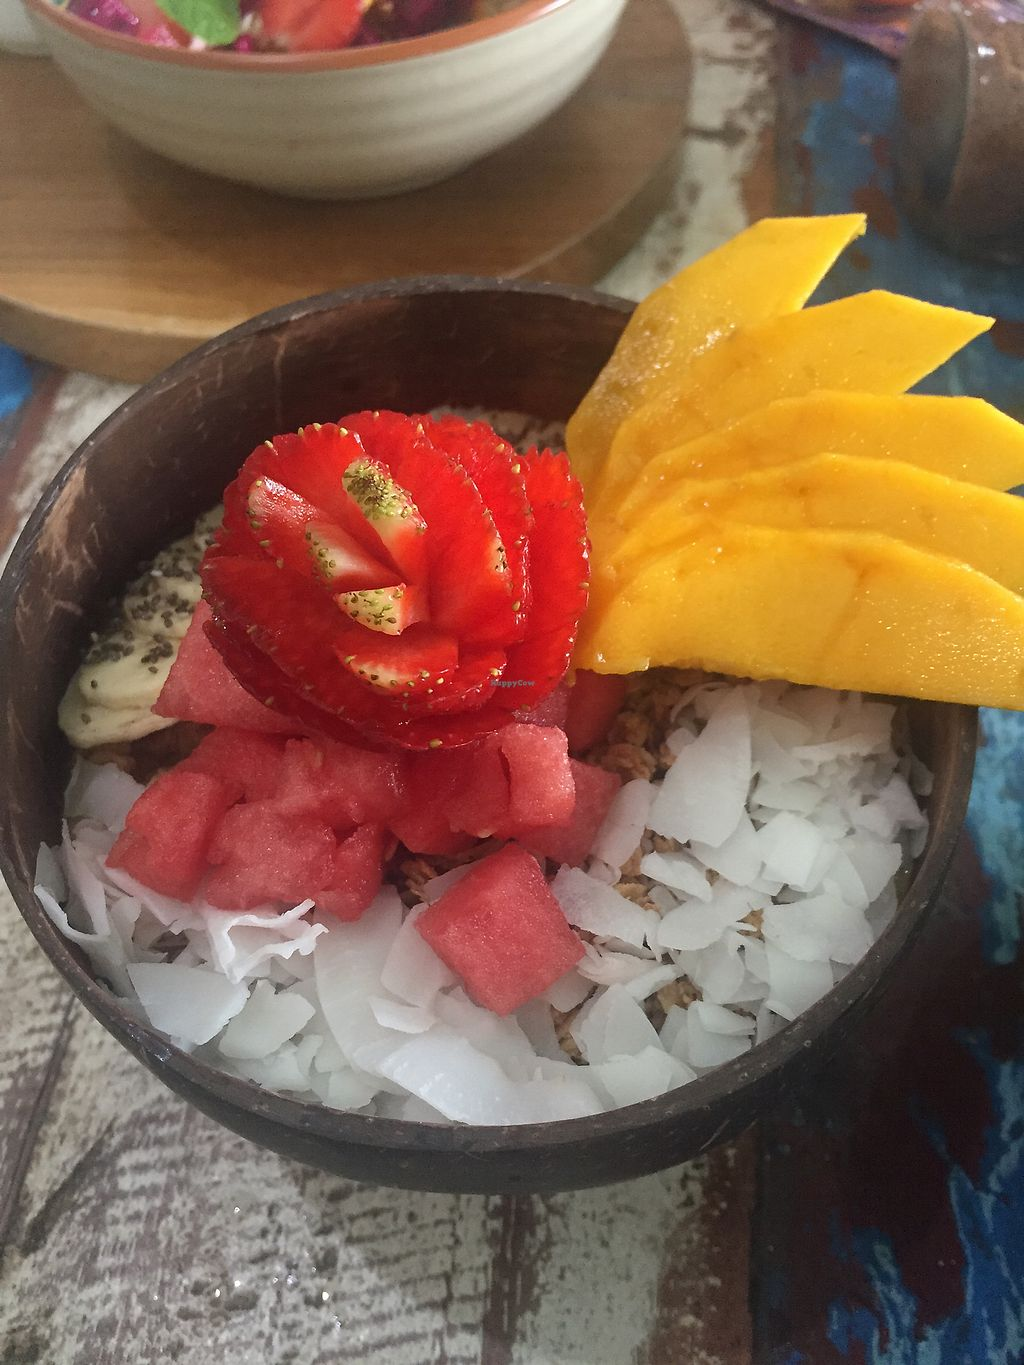 """Photo of CLOSED: The Spicy Coconut  by <a href=""""/members/profile/auroreFR"""">auroreFR</a> <br/>mango madness smoothie bowl  <br/> August 21, 2017  - <a href='/contact/abuse/image/73419/295047'>Report</a>"""